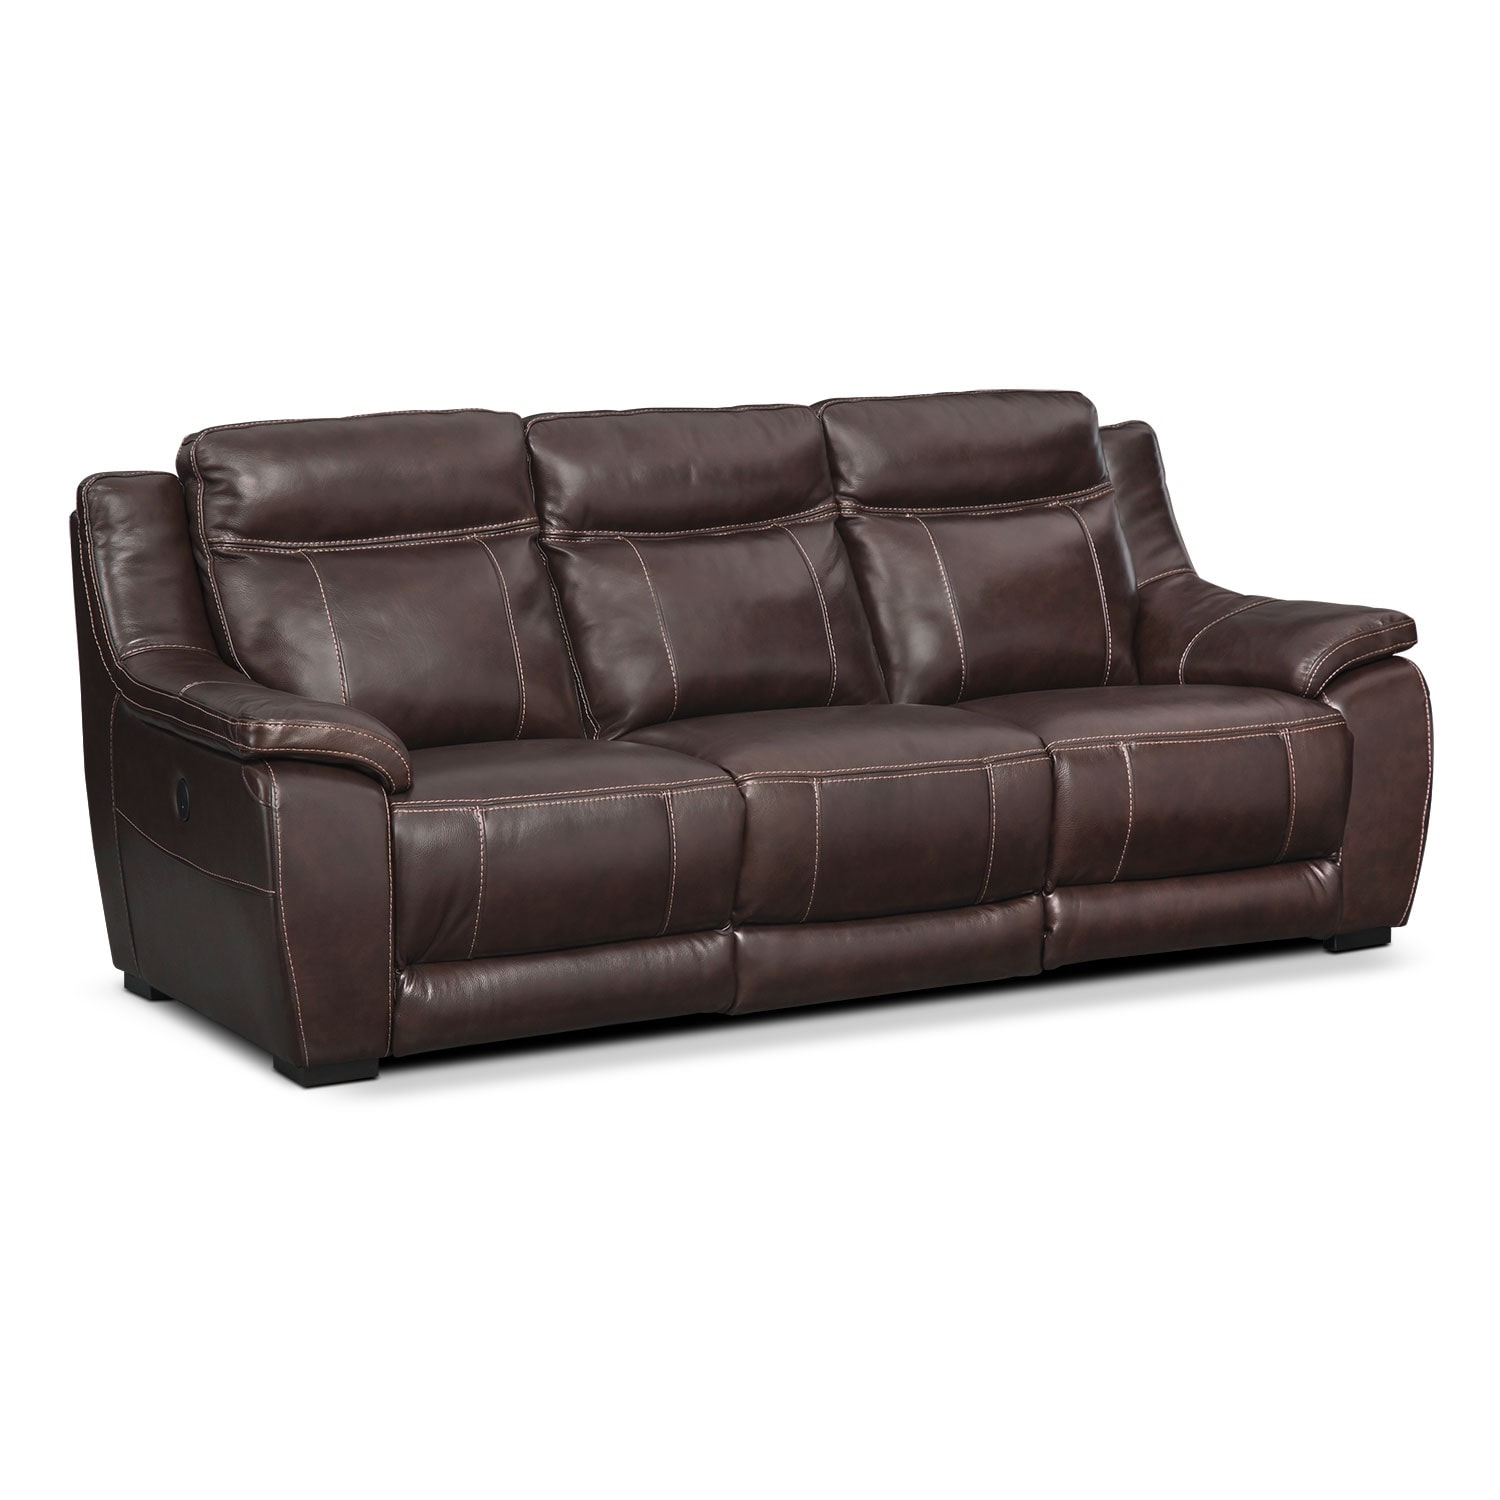 Power reclining sofa and loveseat sets Power reclining sofas and loveseats